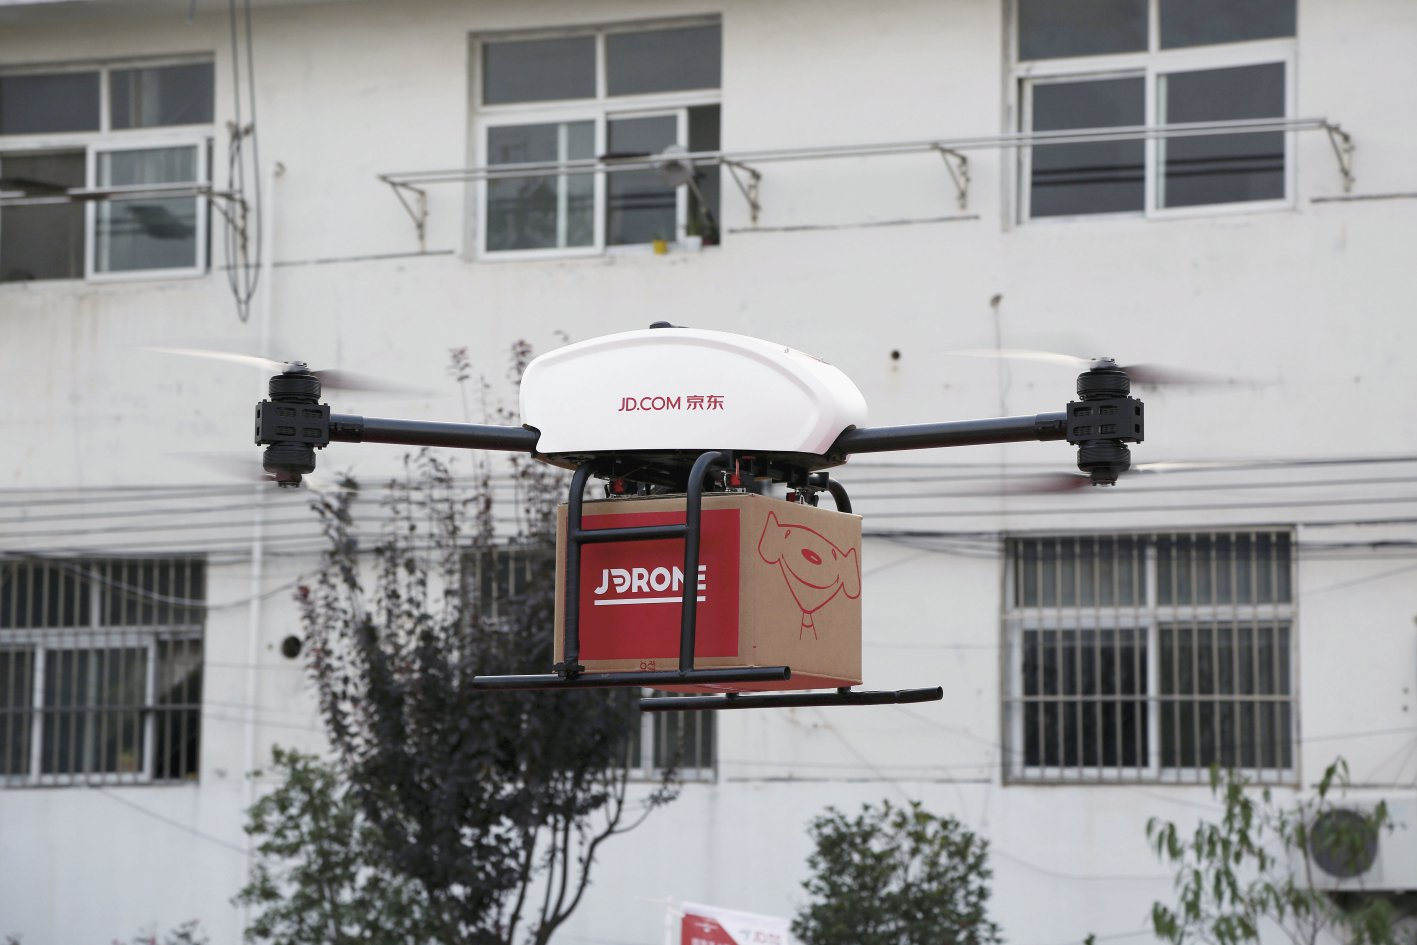 A JD.com delivery UAV, pictured in November 2016 on take-off in Suqian, Jiangsu Province, China.